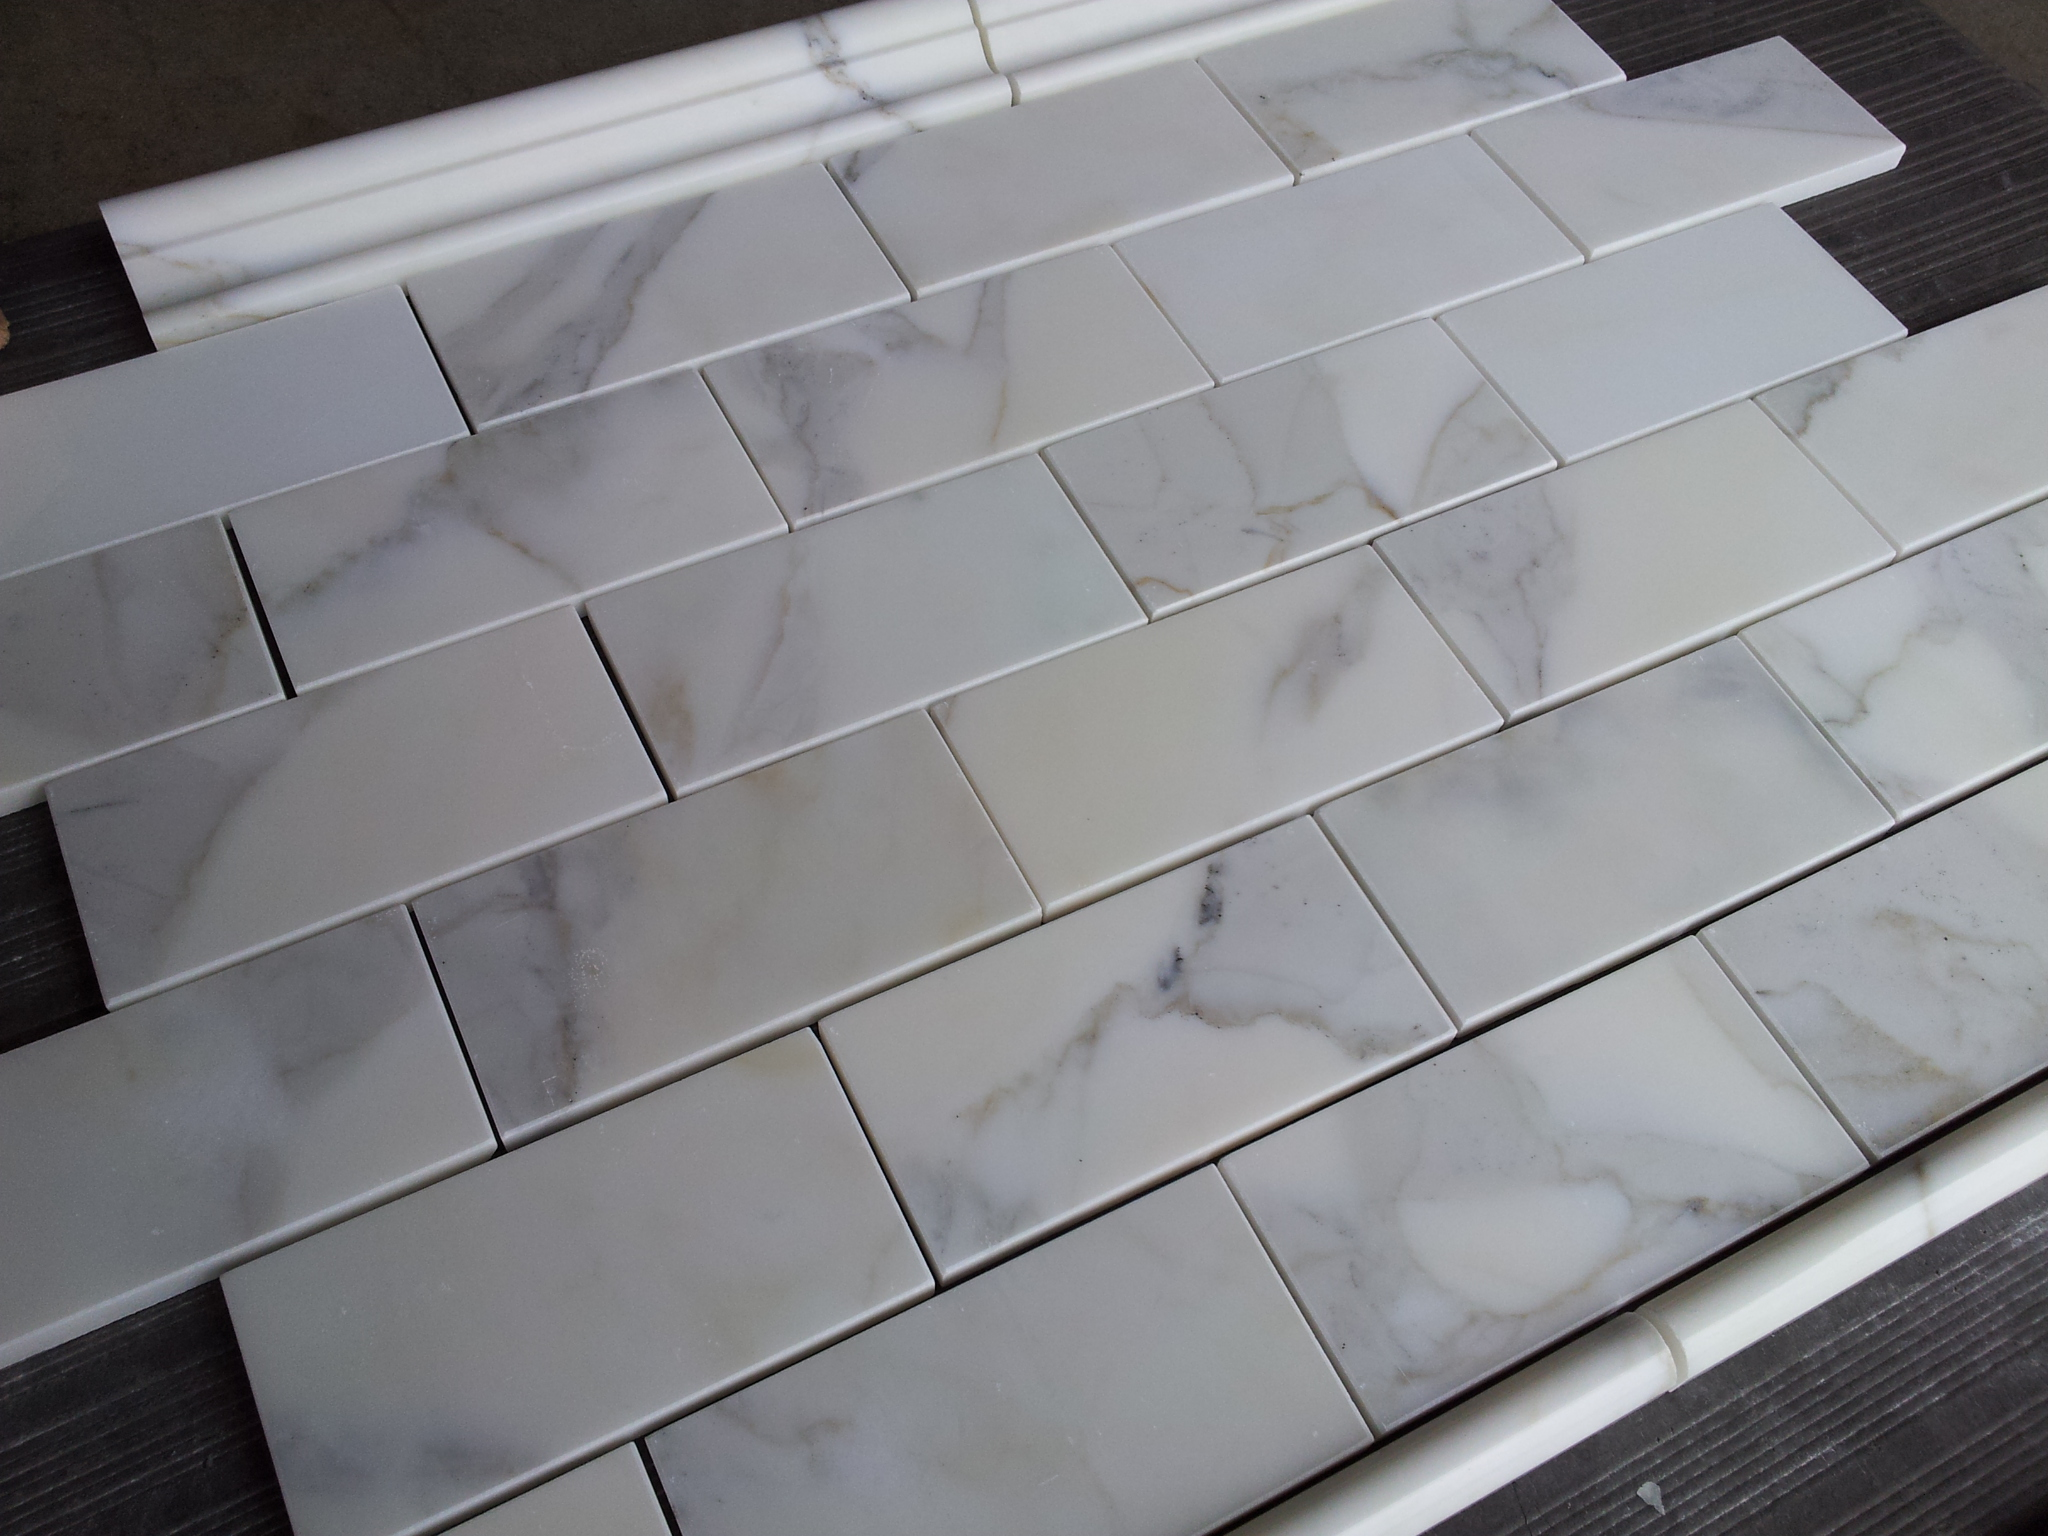 Cute 12X12 Floor Tile Huge 12X24 Ceramic Floor Tile Flat 18 Ceramic Tile 20 X 20 Floor Tile Patterns Youthful 2X4 White Subway Tile Fresh3X6 Beveled Subway Tile Calacatta 3×6\u2033 Subway Tile | The Builder Depot Blog